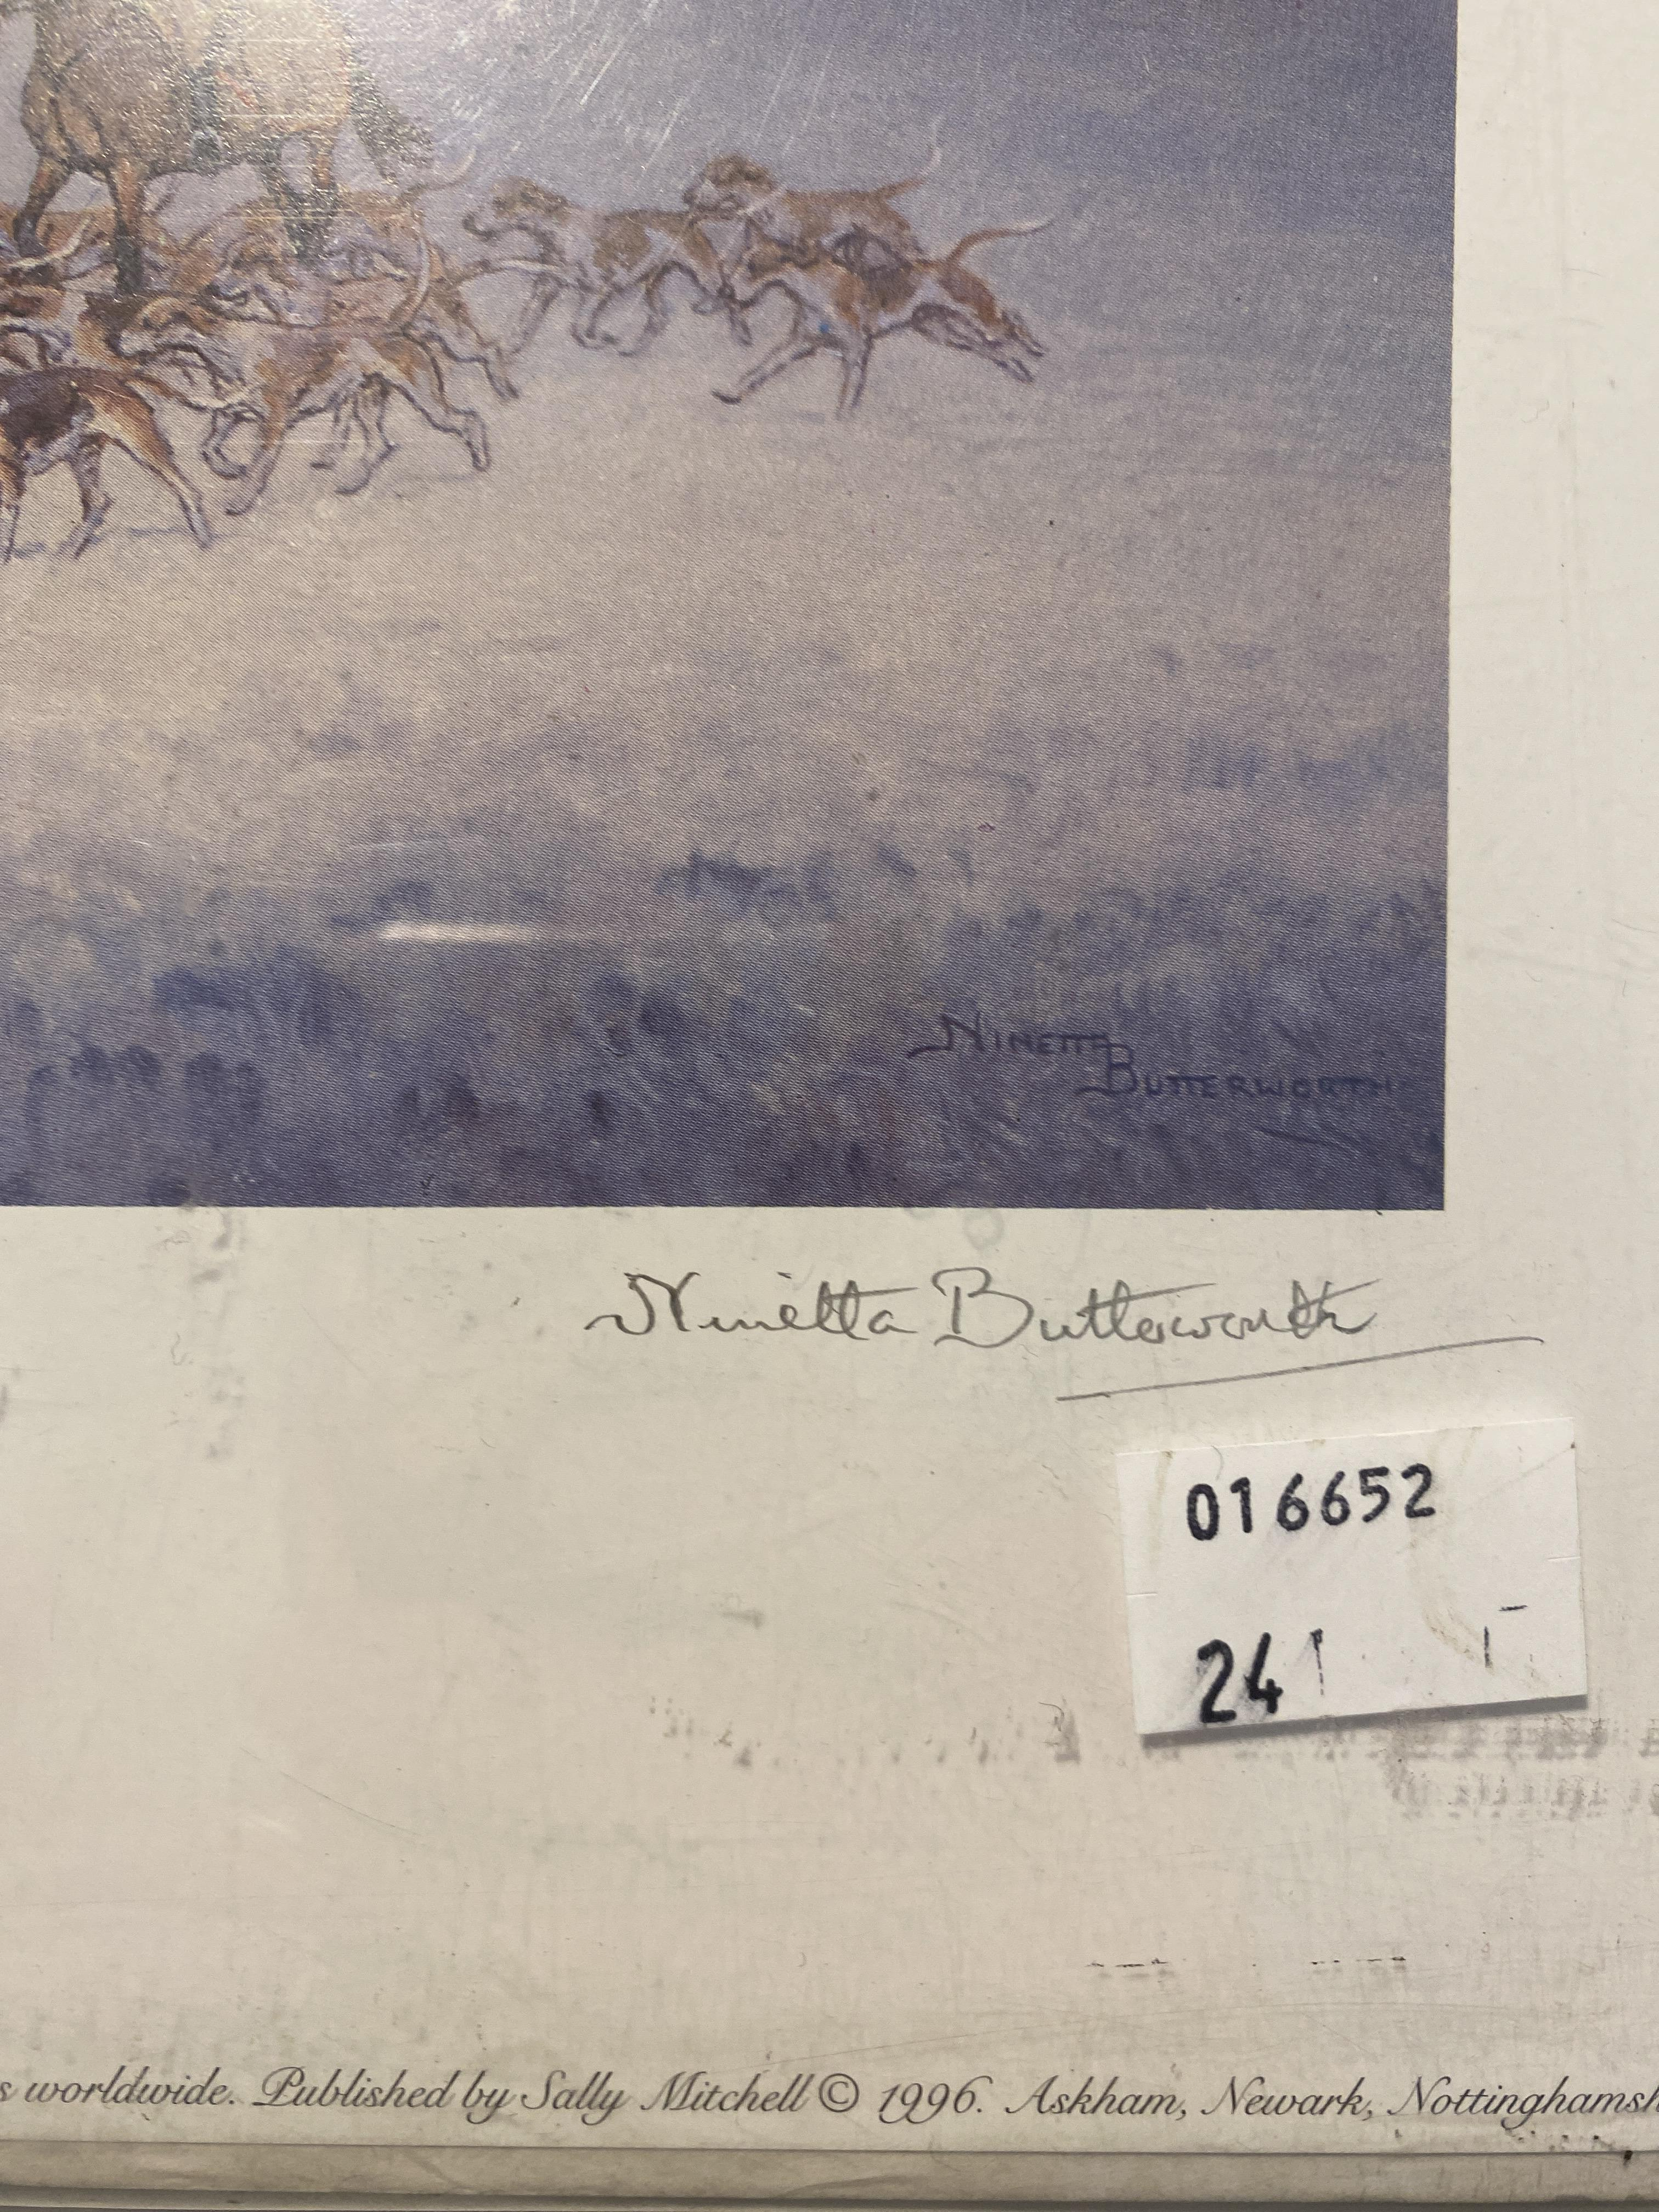 Morning Exercise Limited Edition Print By Ninetta Butterworth - Image 2 of 4